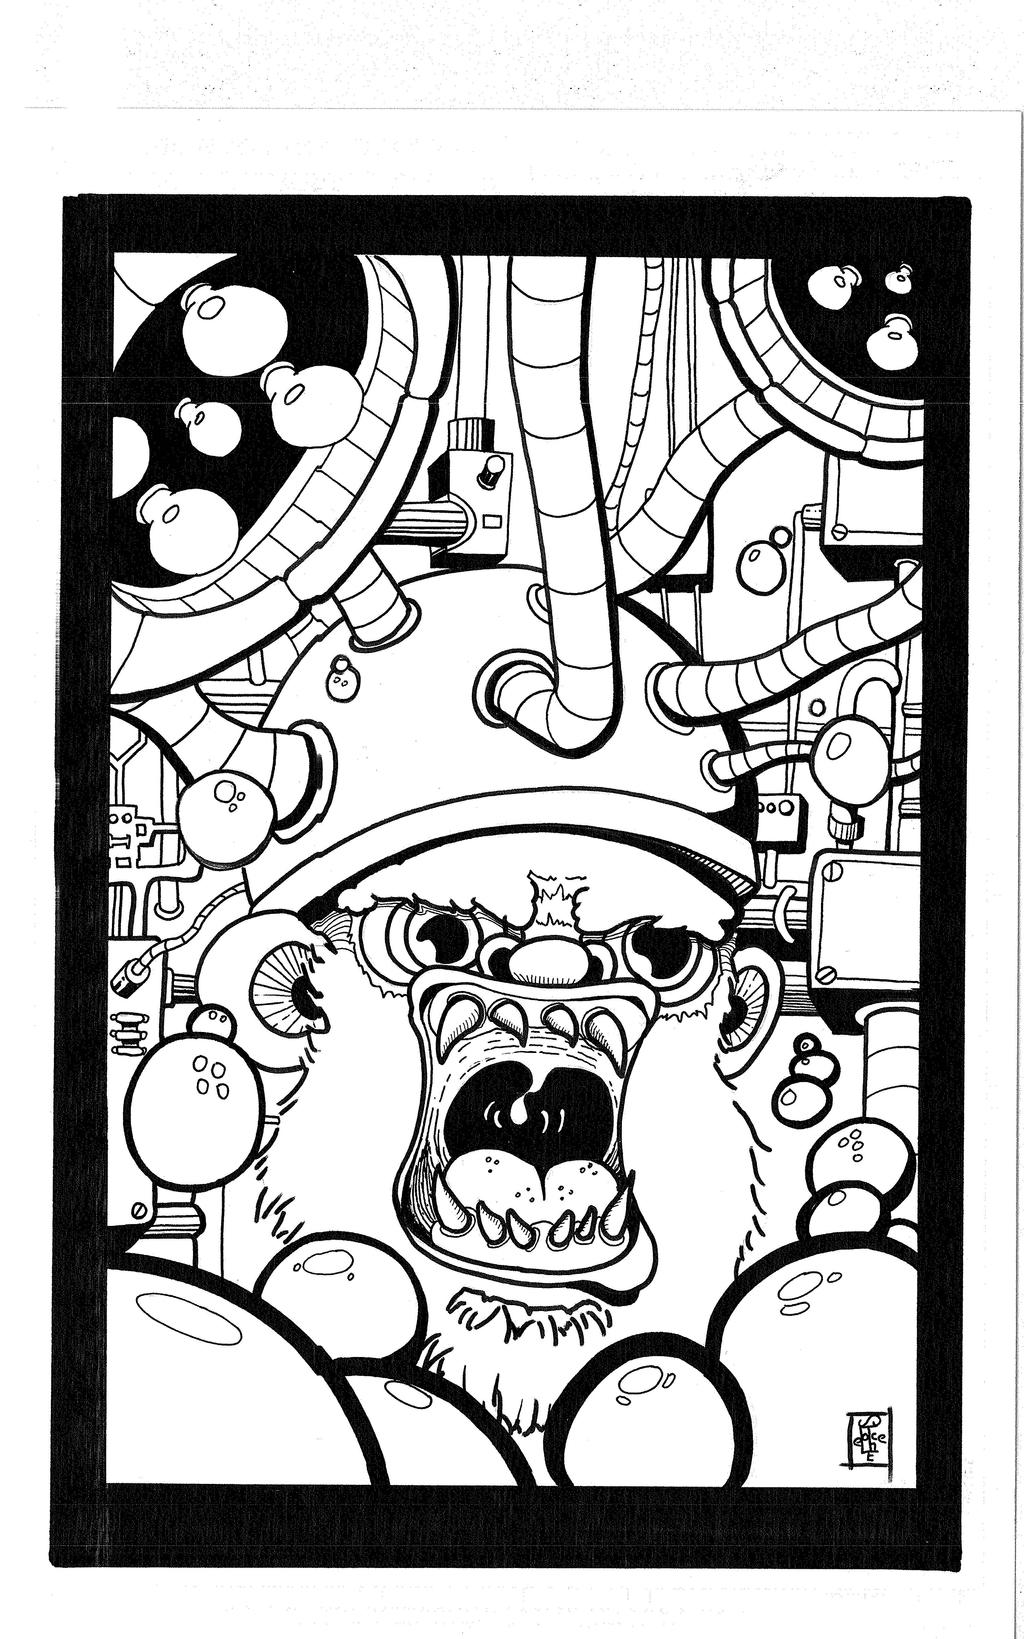 Tortured Monkey Adult coloring book page